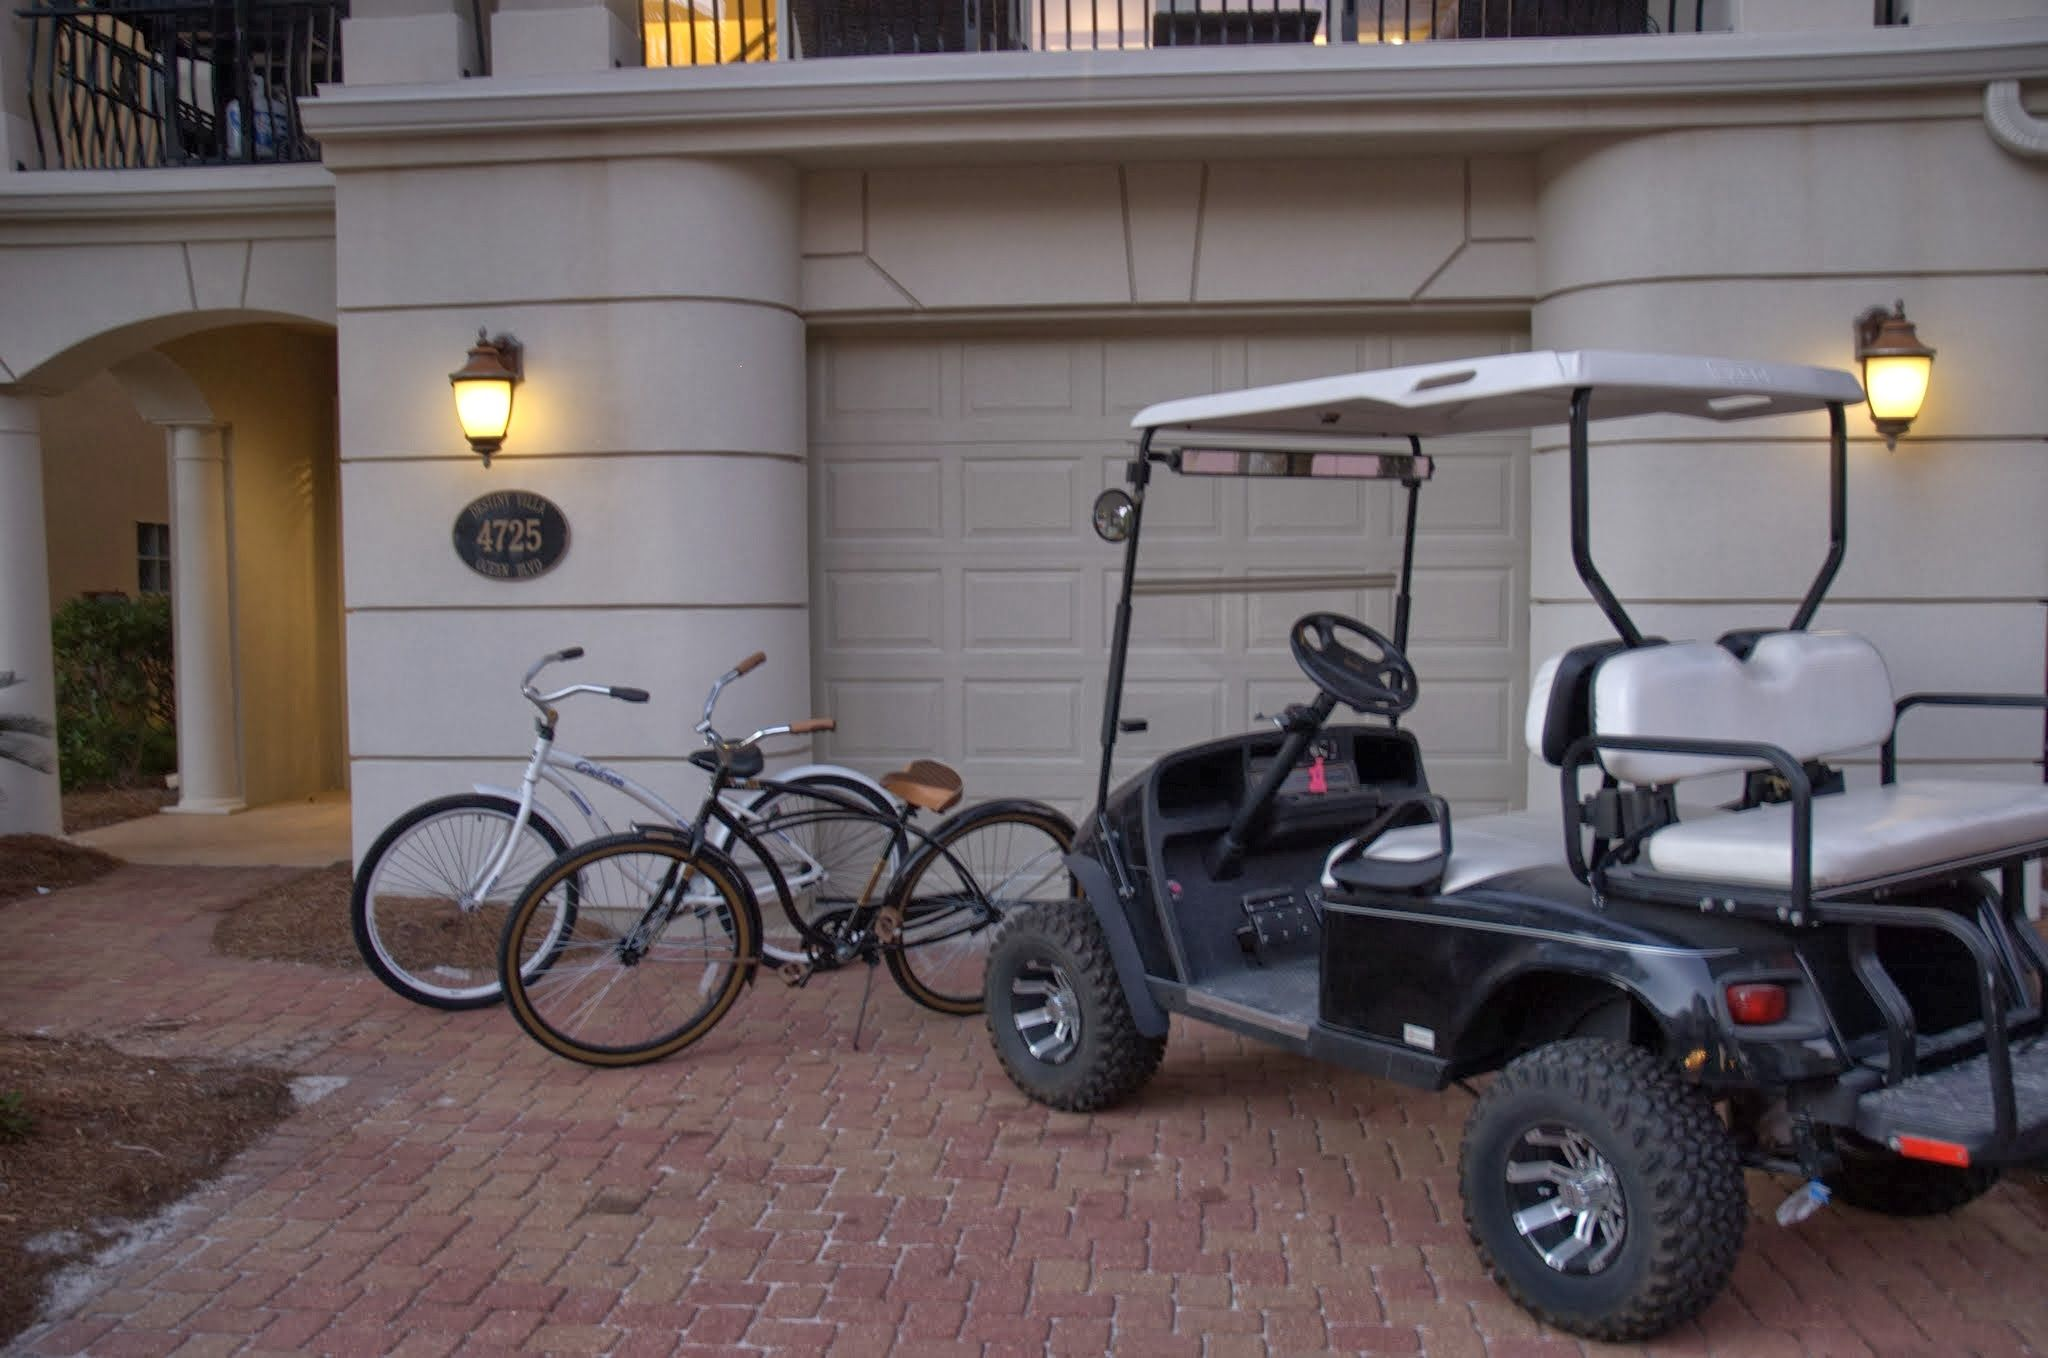 We value all types of transportation! The golf cart is free to use, along with the bikes. Kayak rentals are available on the beach during the summer!